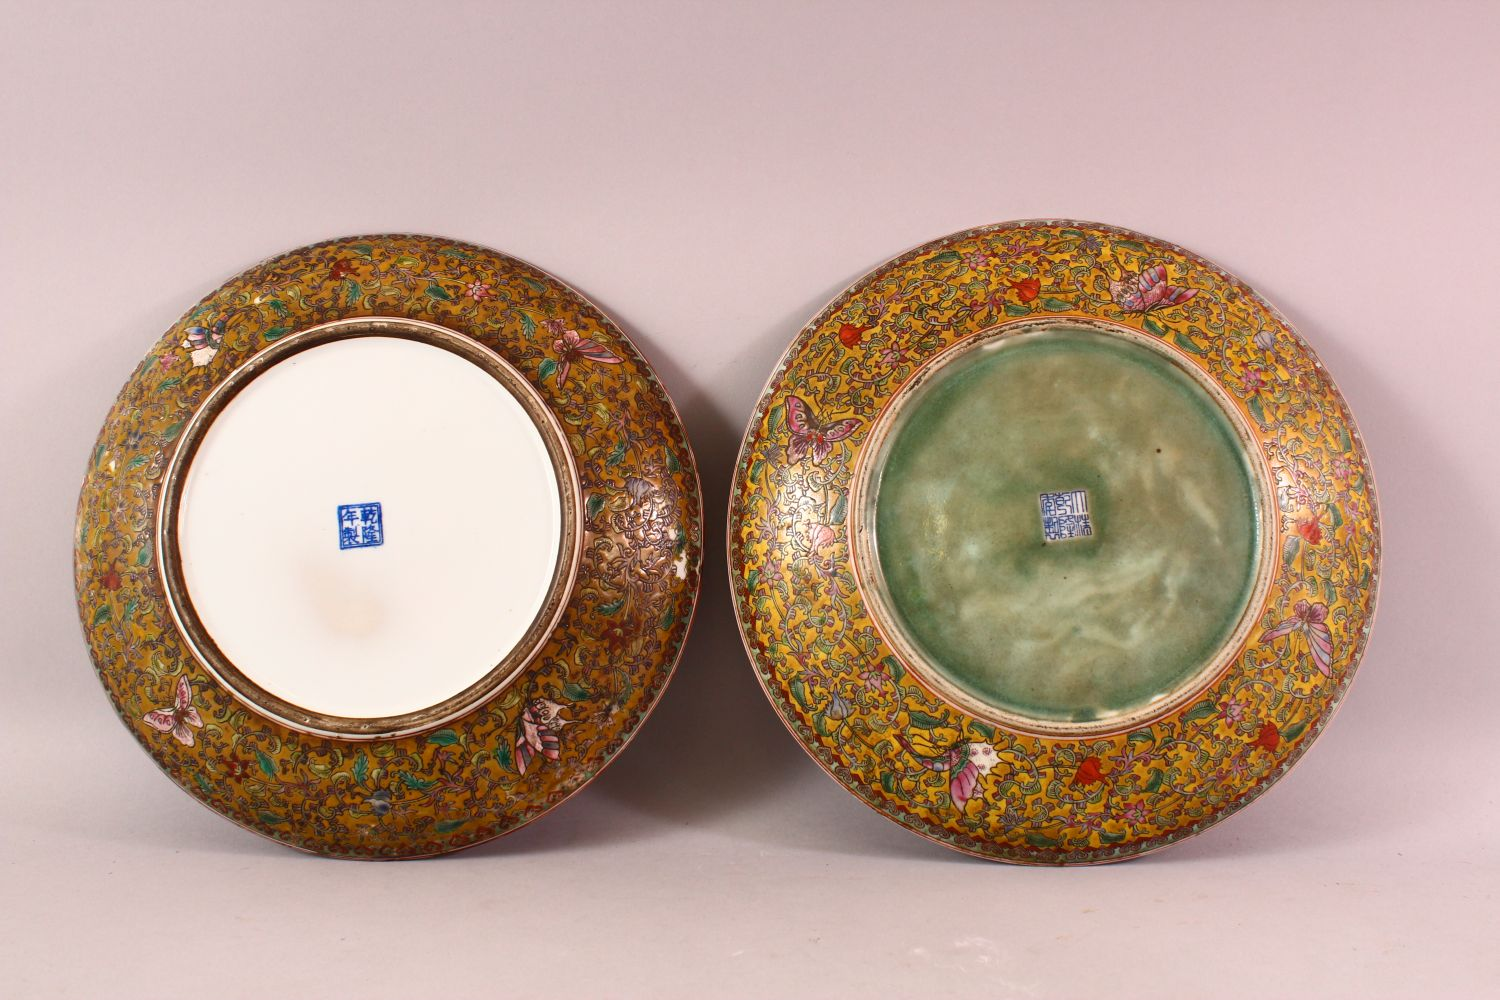 A TWO 19TH / 20TH CENTURY CHINESE FAMILLE ROSE PORCELAIN MILLEFLUER DISH, both with butterfly and - Image 4 of 6